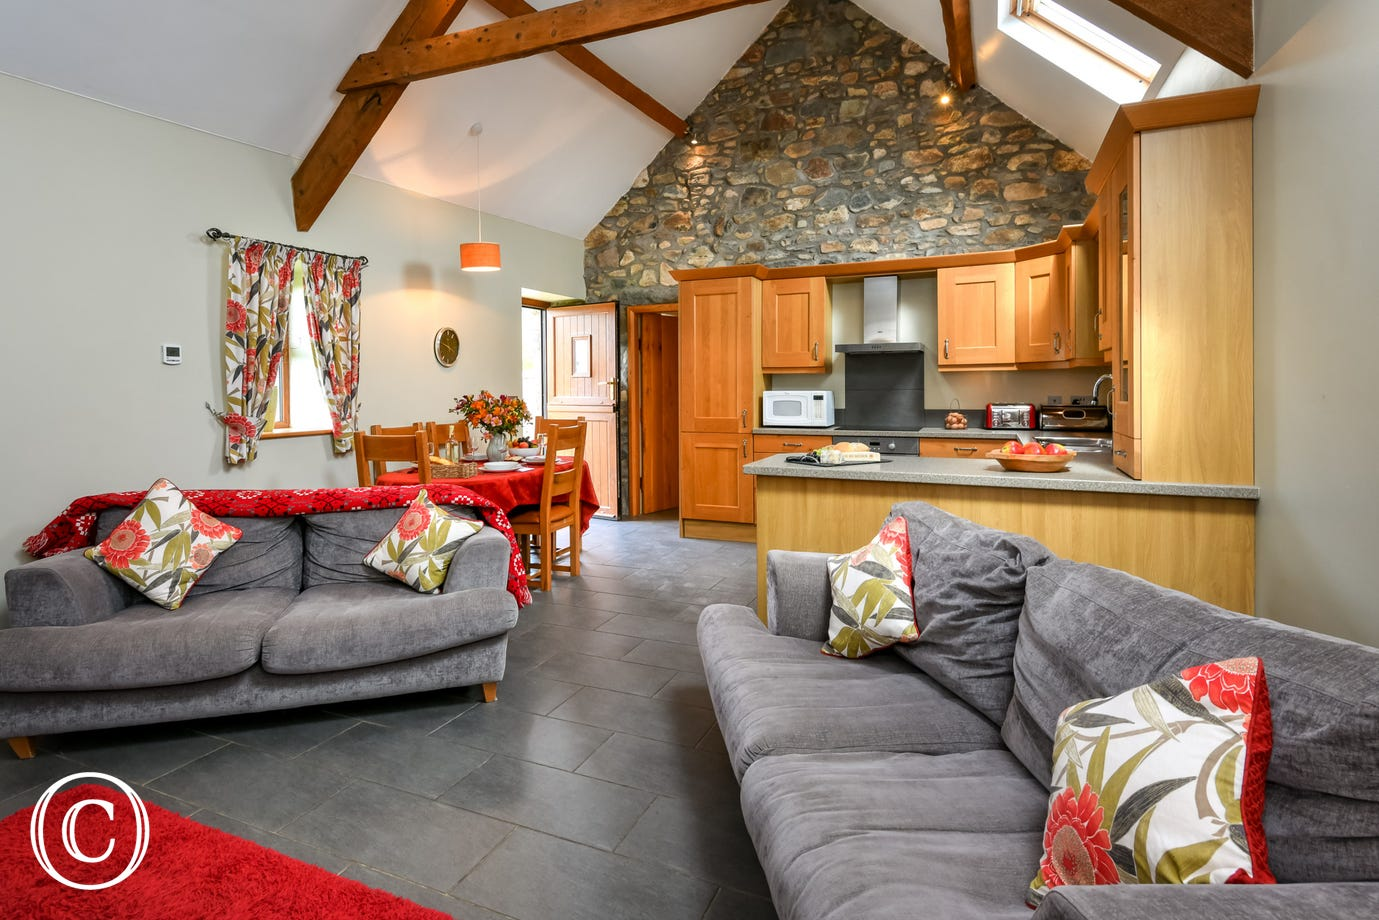 Llyn Peninsula self catering cottage in a peaceful, rural setting